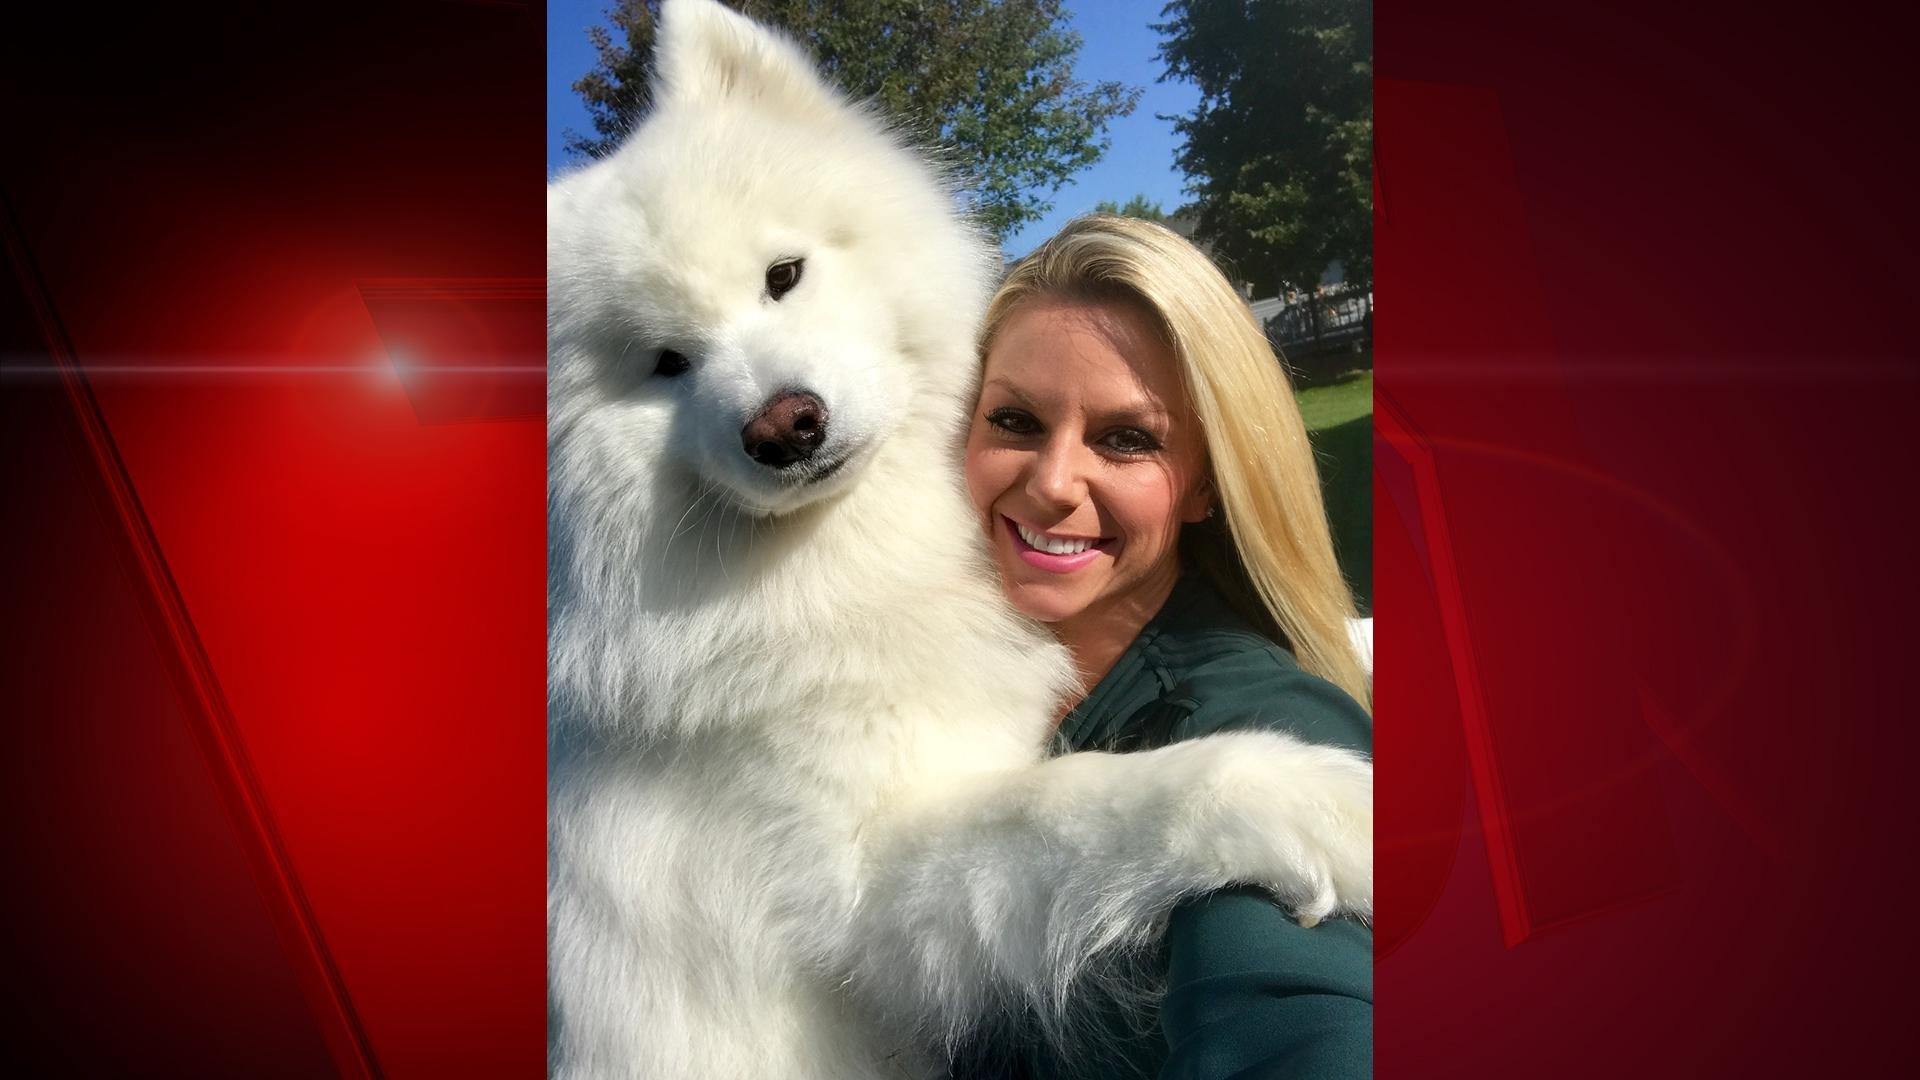 "Meet FOX 11 Good Day Wisconsin reporter Lauren Kalil's dog, Saber. He is a 3-year-old Siberian Samoyed. Lauren says, ""Saber absolutely LOVES the Winter! Unlike his mother, he loves to spend hours playing in the snow and fetching for sticks. The only thing he likes about the summer months is when he's able to cool off in Lake Michigan and play in the waves. He's extremely friendly to anyone he meets and will do almost anything for peanut butter."" (WLUK/Lauren Kalil)"